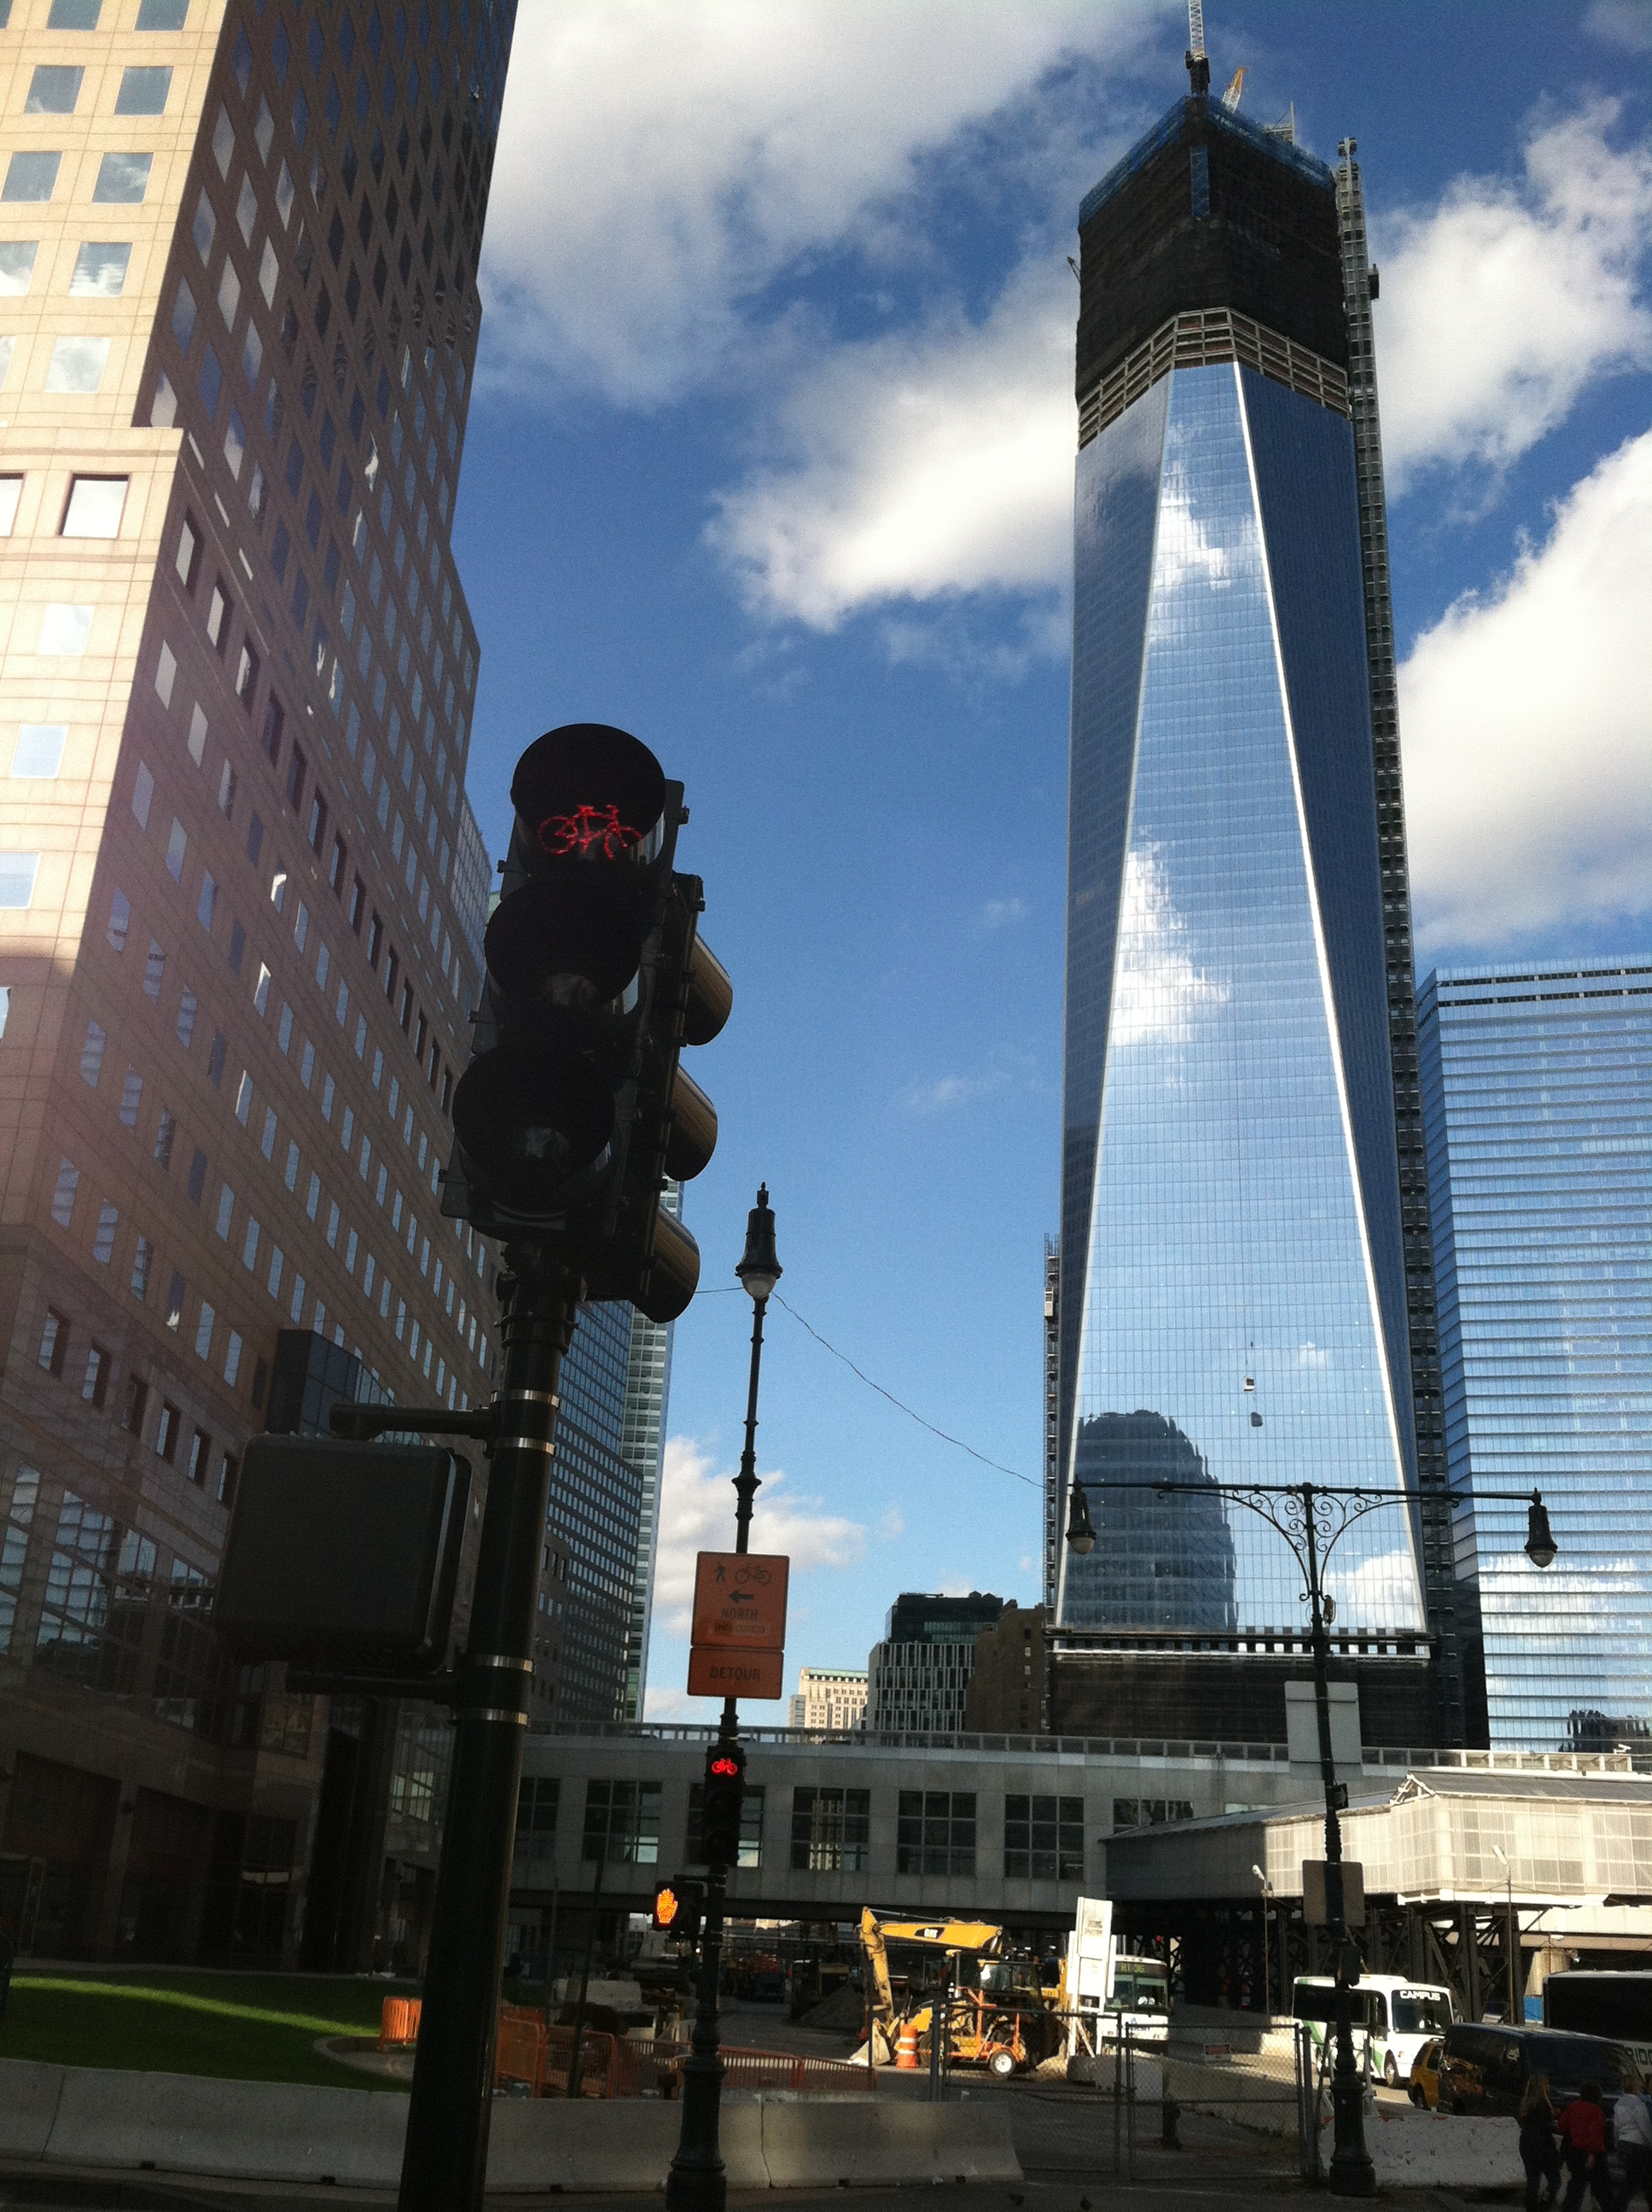 A bike-specific traffic signal foregrounding the construction of the new World Trade Center Towers